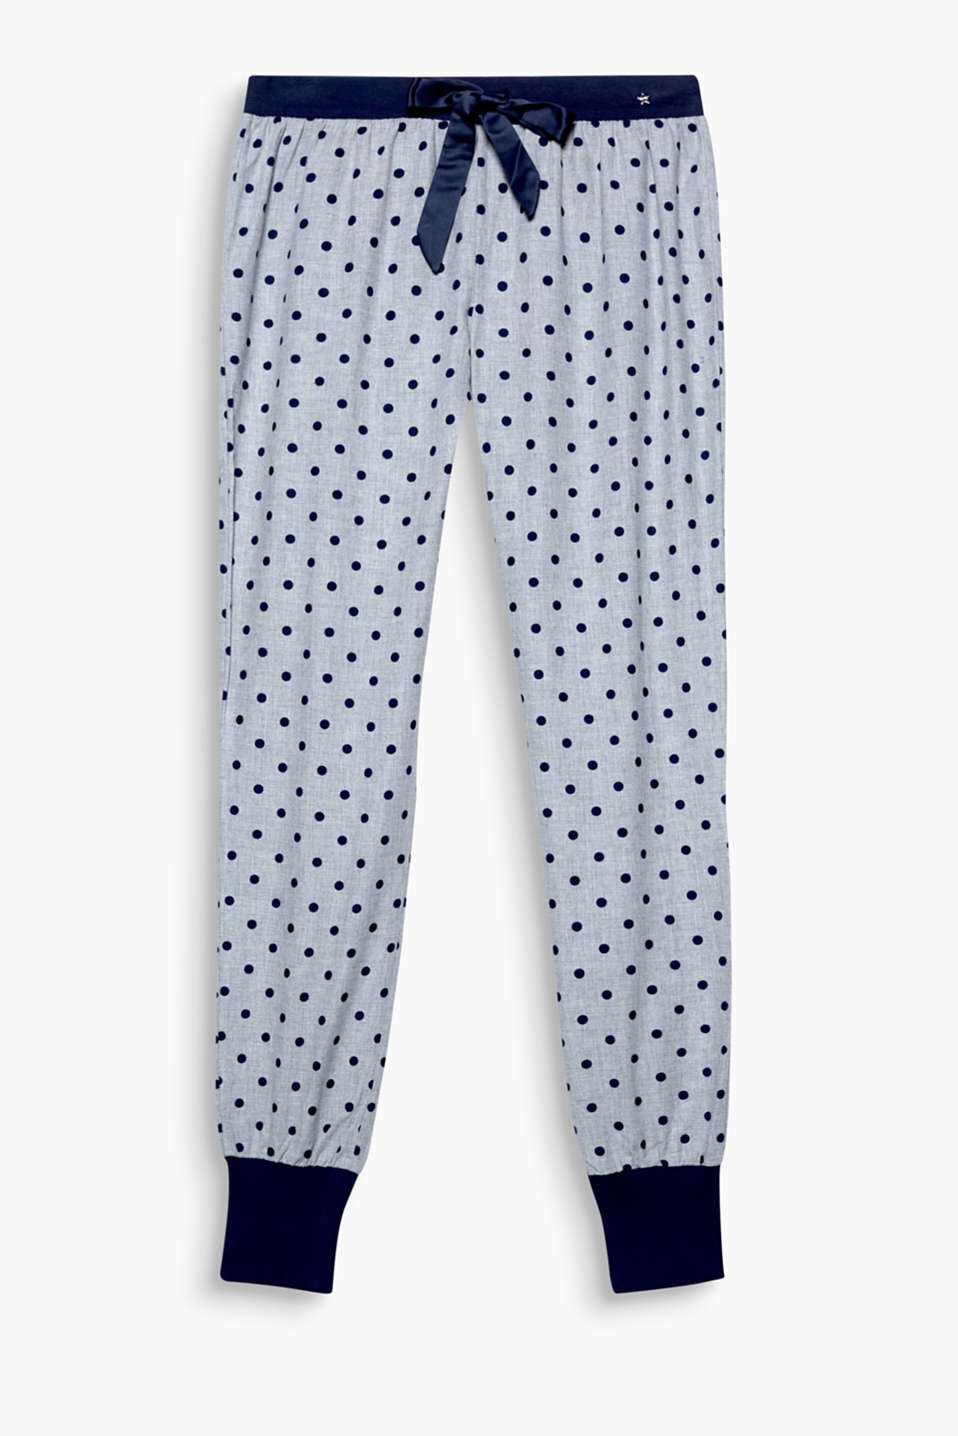 Retro polka dots are equally beguiling by night: pyjama bottoms with an elasticated waistband, satin bow and hem borders